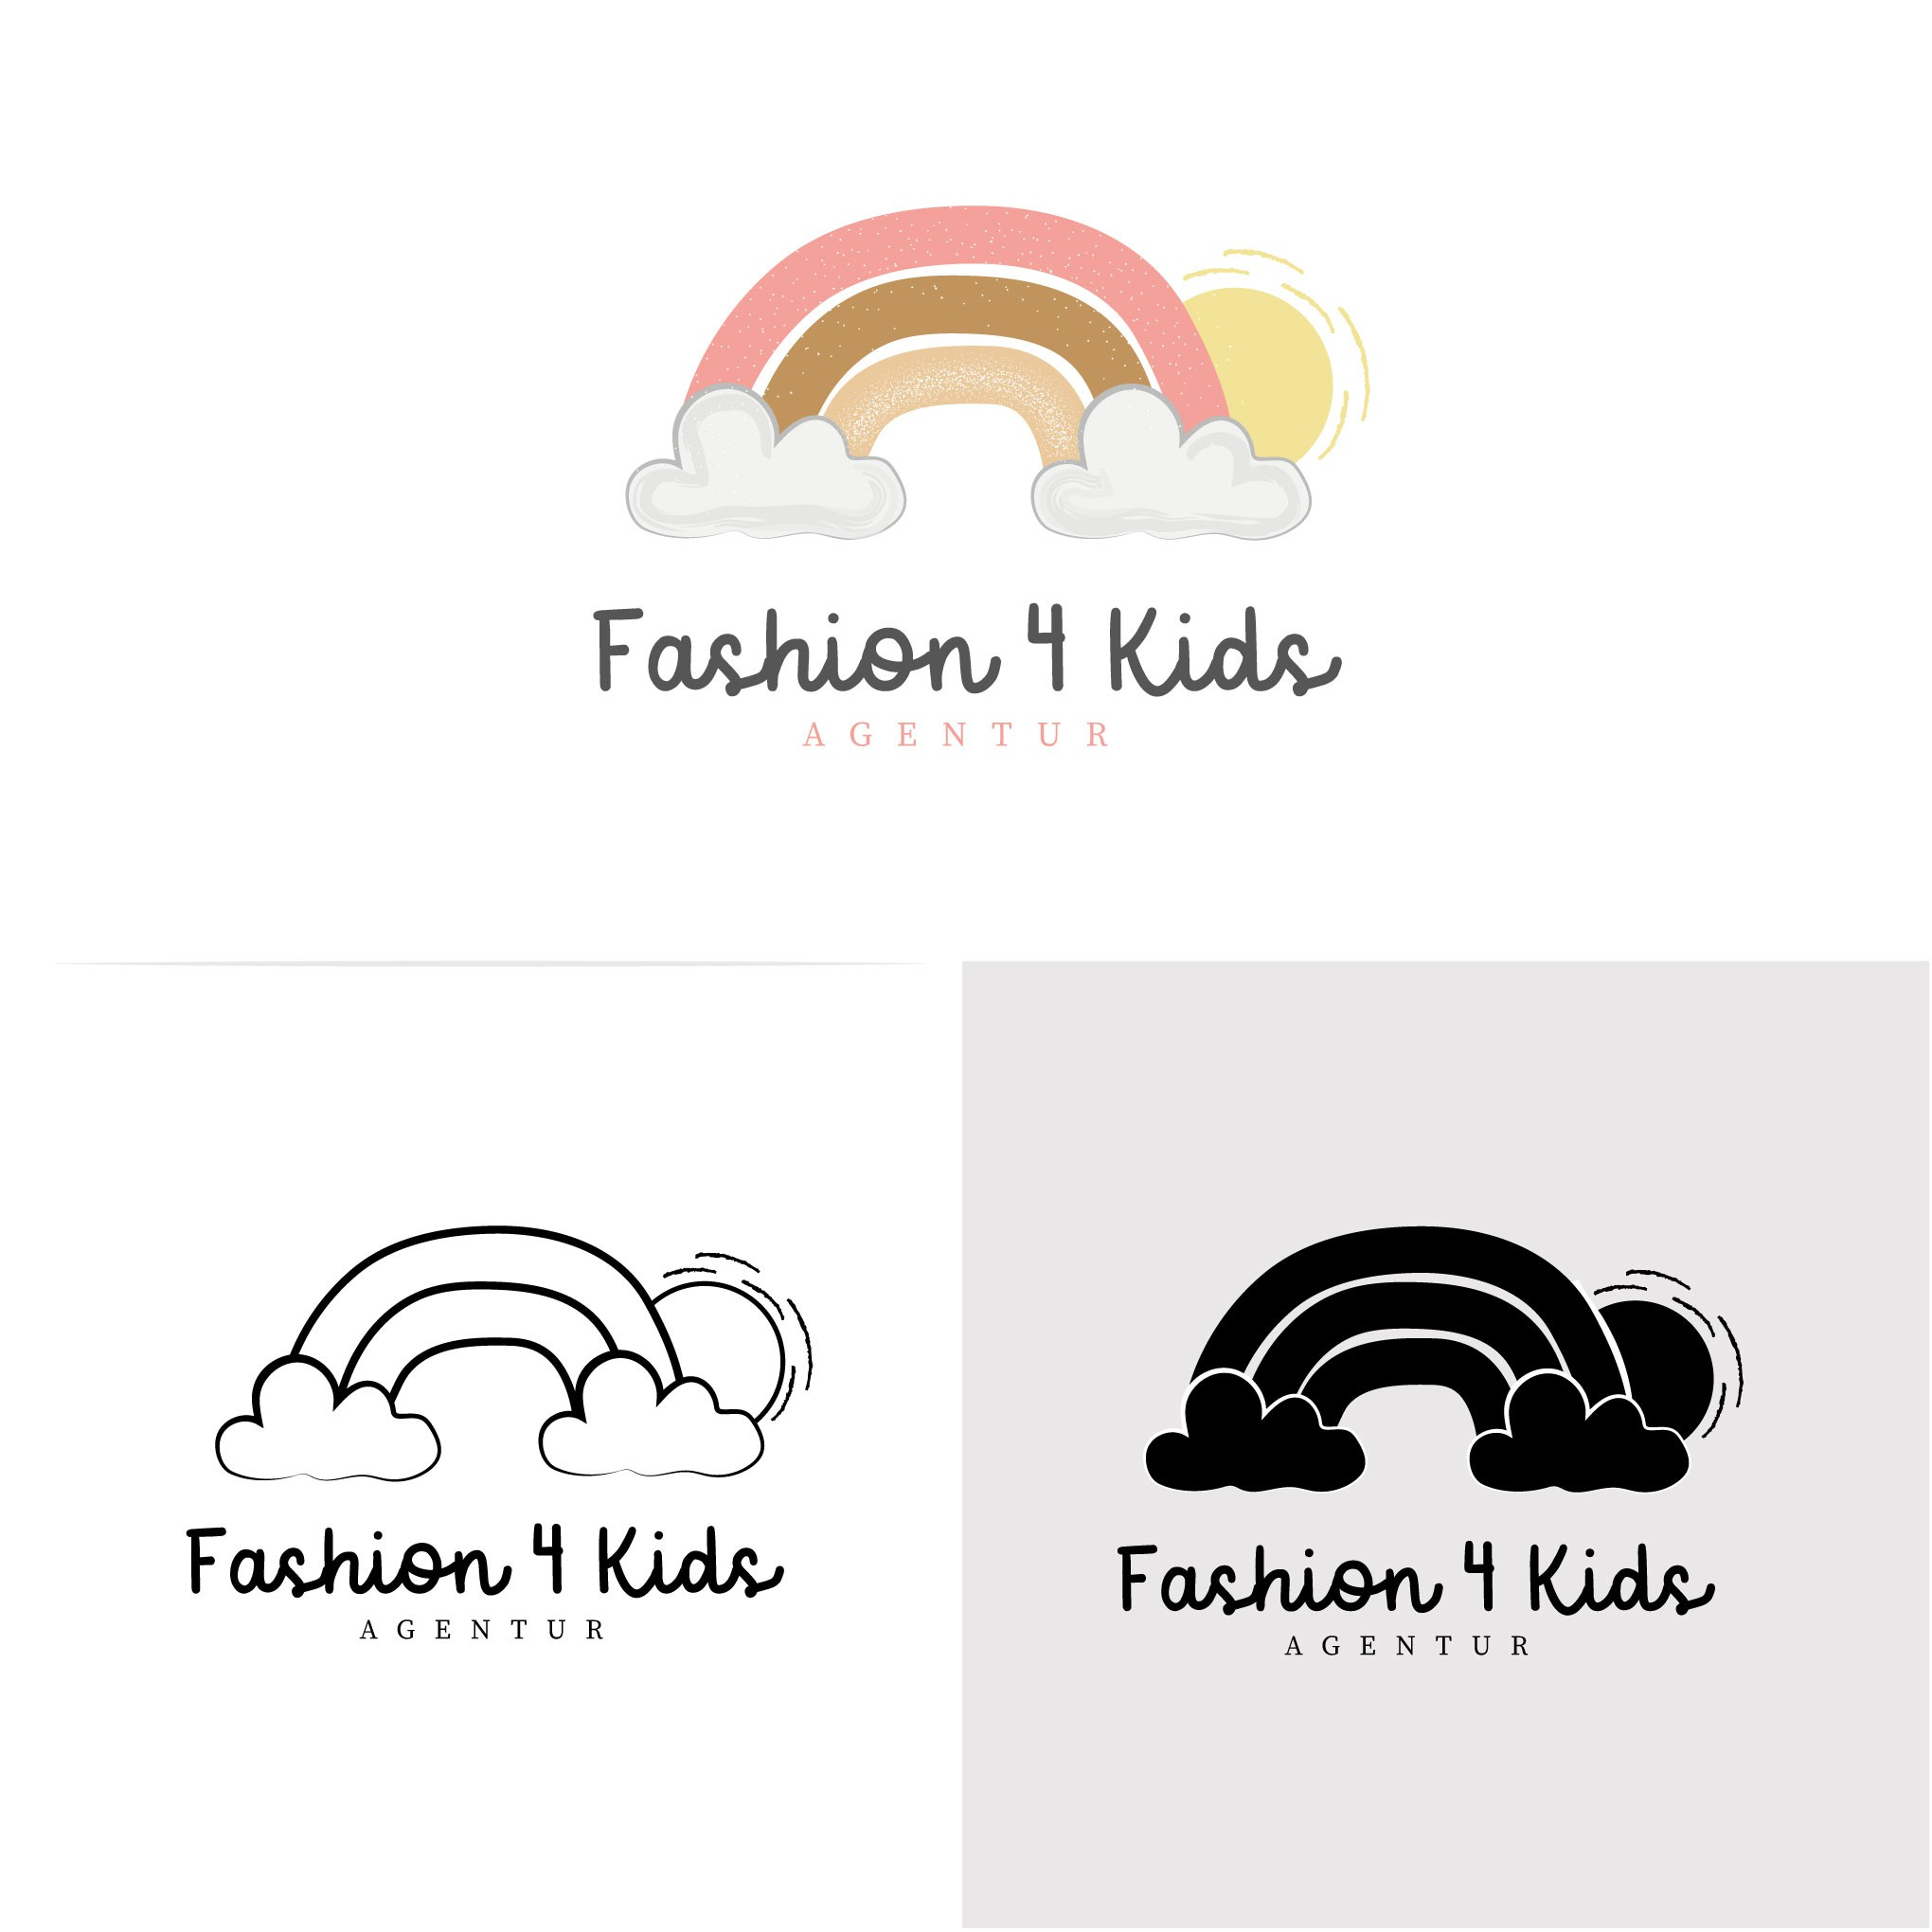 Looking for a (outdoor) kids fashion brand logo